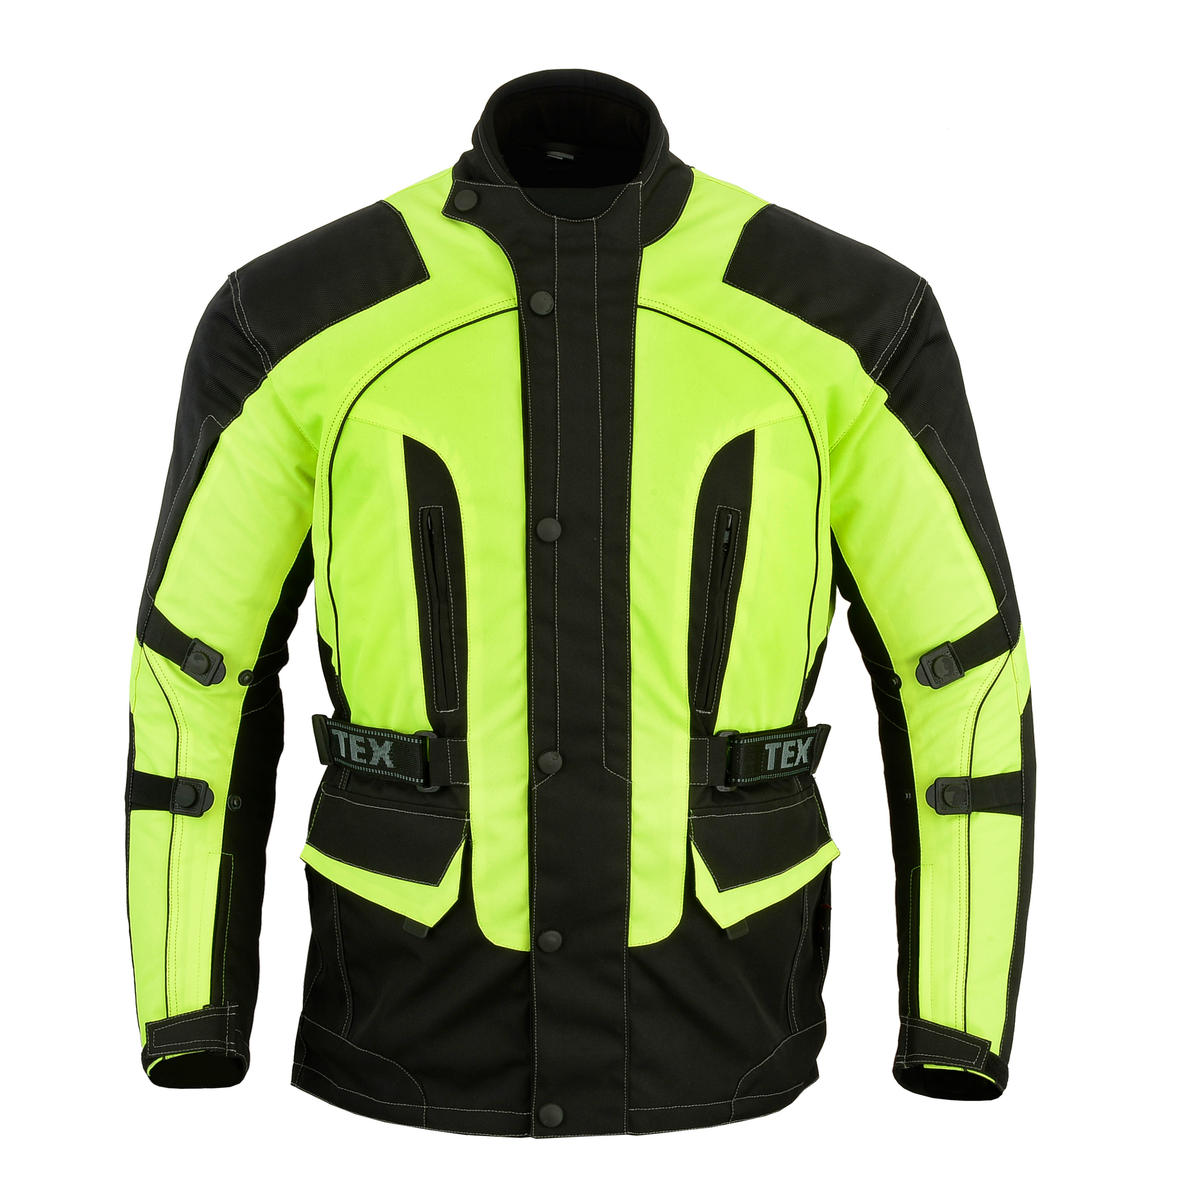 Motorbike Jacket Hi Vis Waterproof Motorcycle Thermal Biker CE Armour Protect